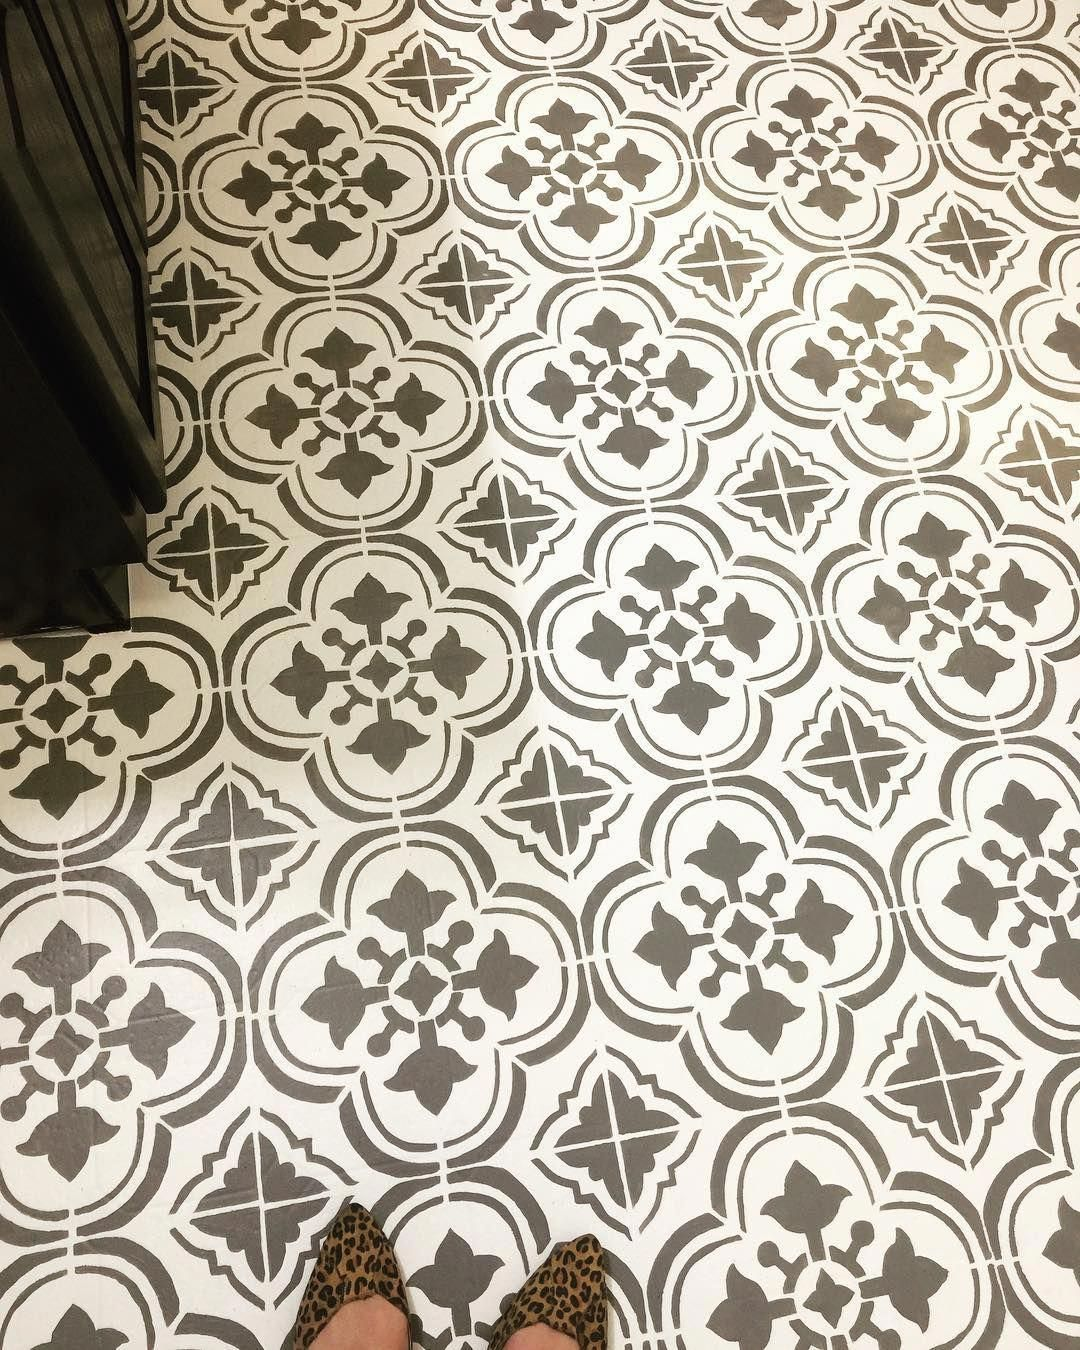 Painted Stenciled Floors Gray And White Faux Ceramic Tiles Budget Friendly Bathroom Ideas Santa Ana Tile Stencil Tile Stencil Flooring Stencils Wall